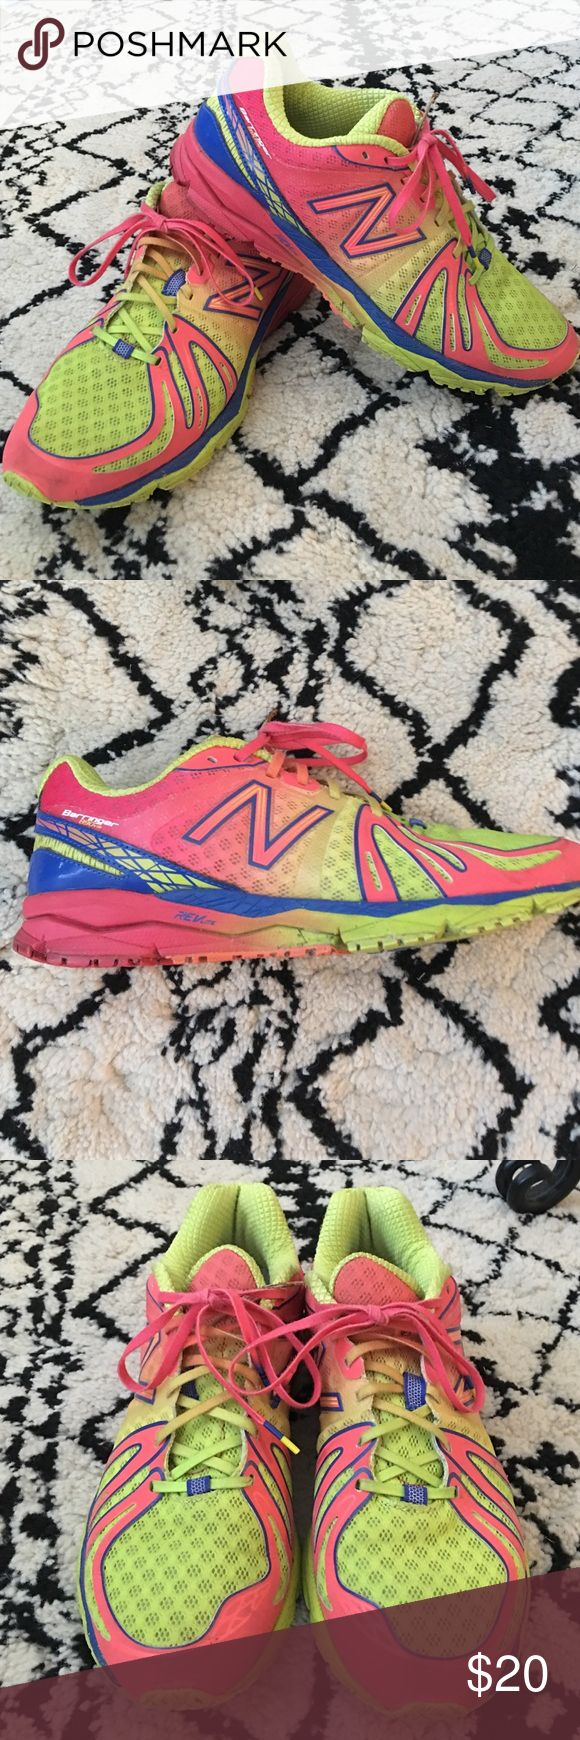 New Balance Barringer 890 Running Shoes Size 8.5 New Balance Barringer 890 running shoes. Good condition. Pink/yellow/blue New Balance Shoes Athletic Shoes